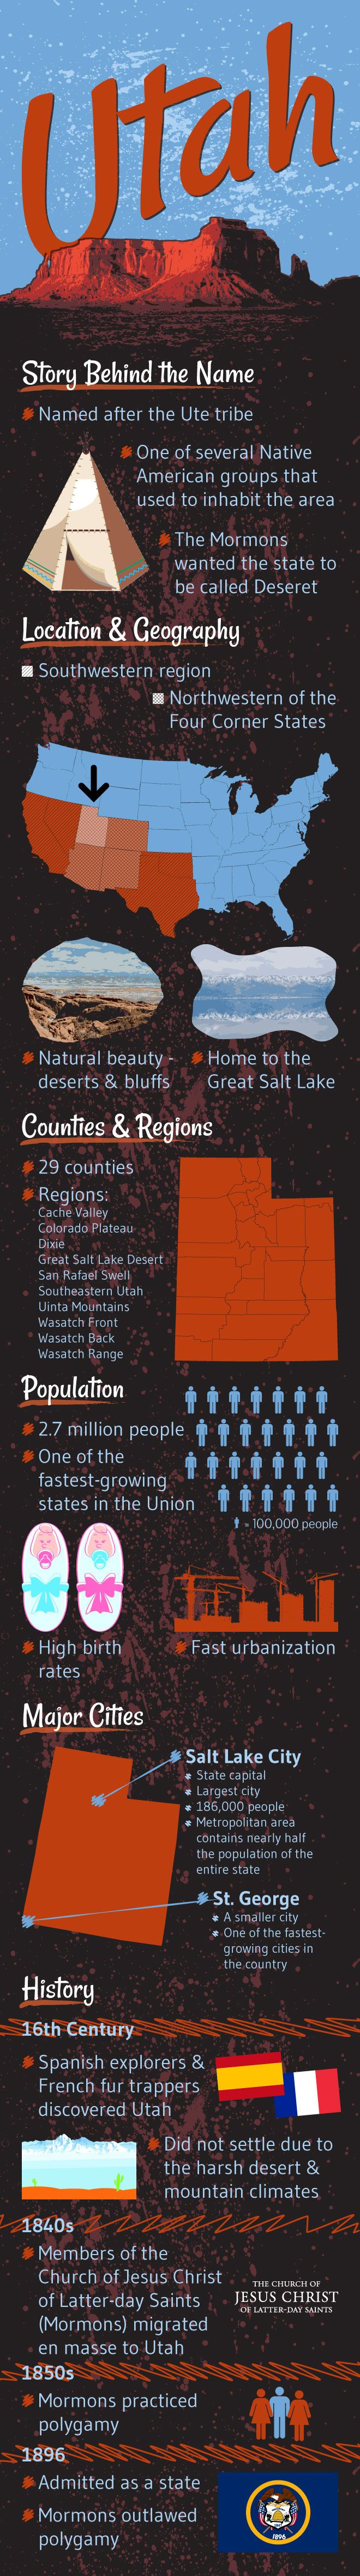 Infographic - Utah Facts                                                                                                                                                                                 More